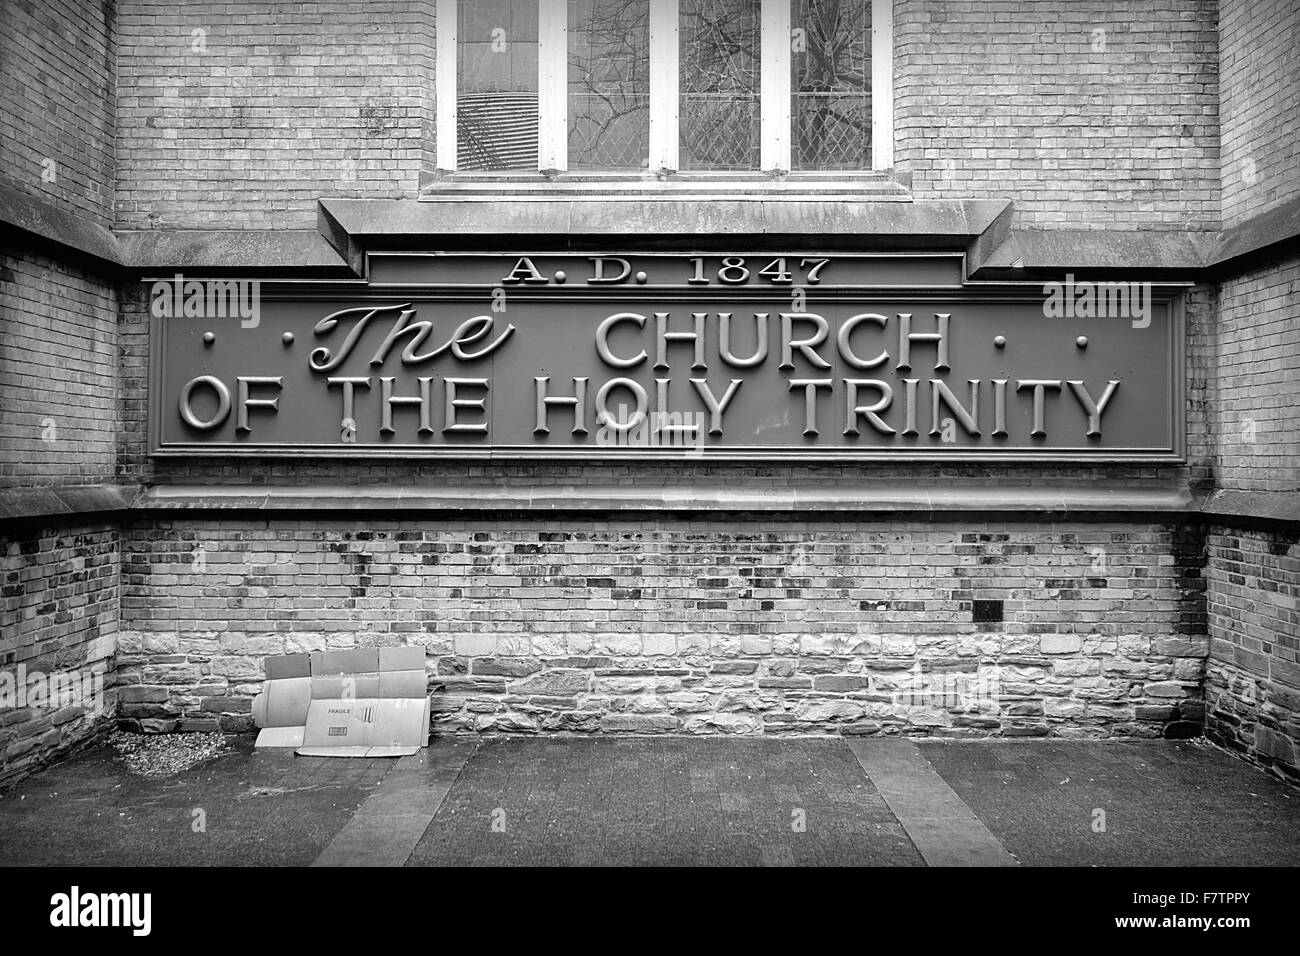 The Church of the Holy Trinity in Toronto, Canada - Stock Image